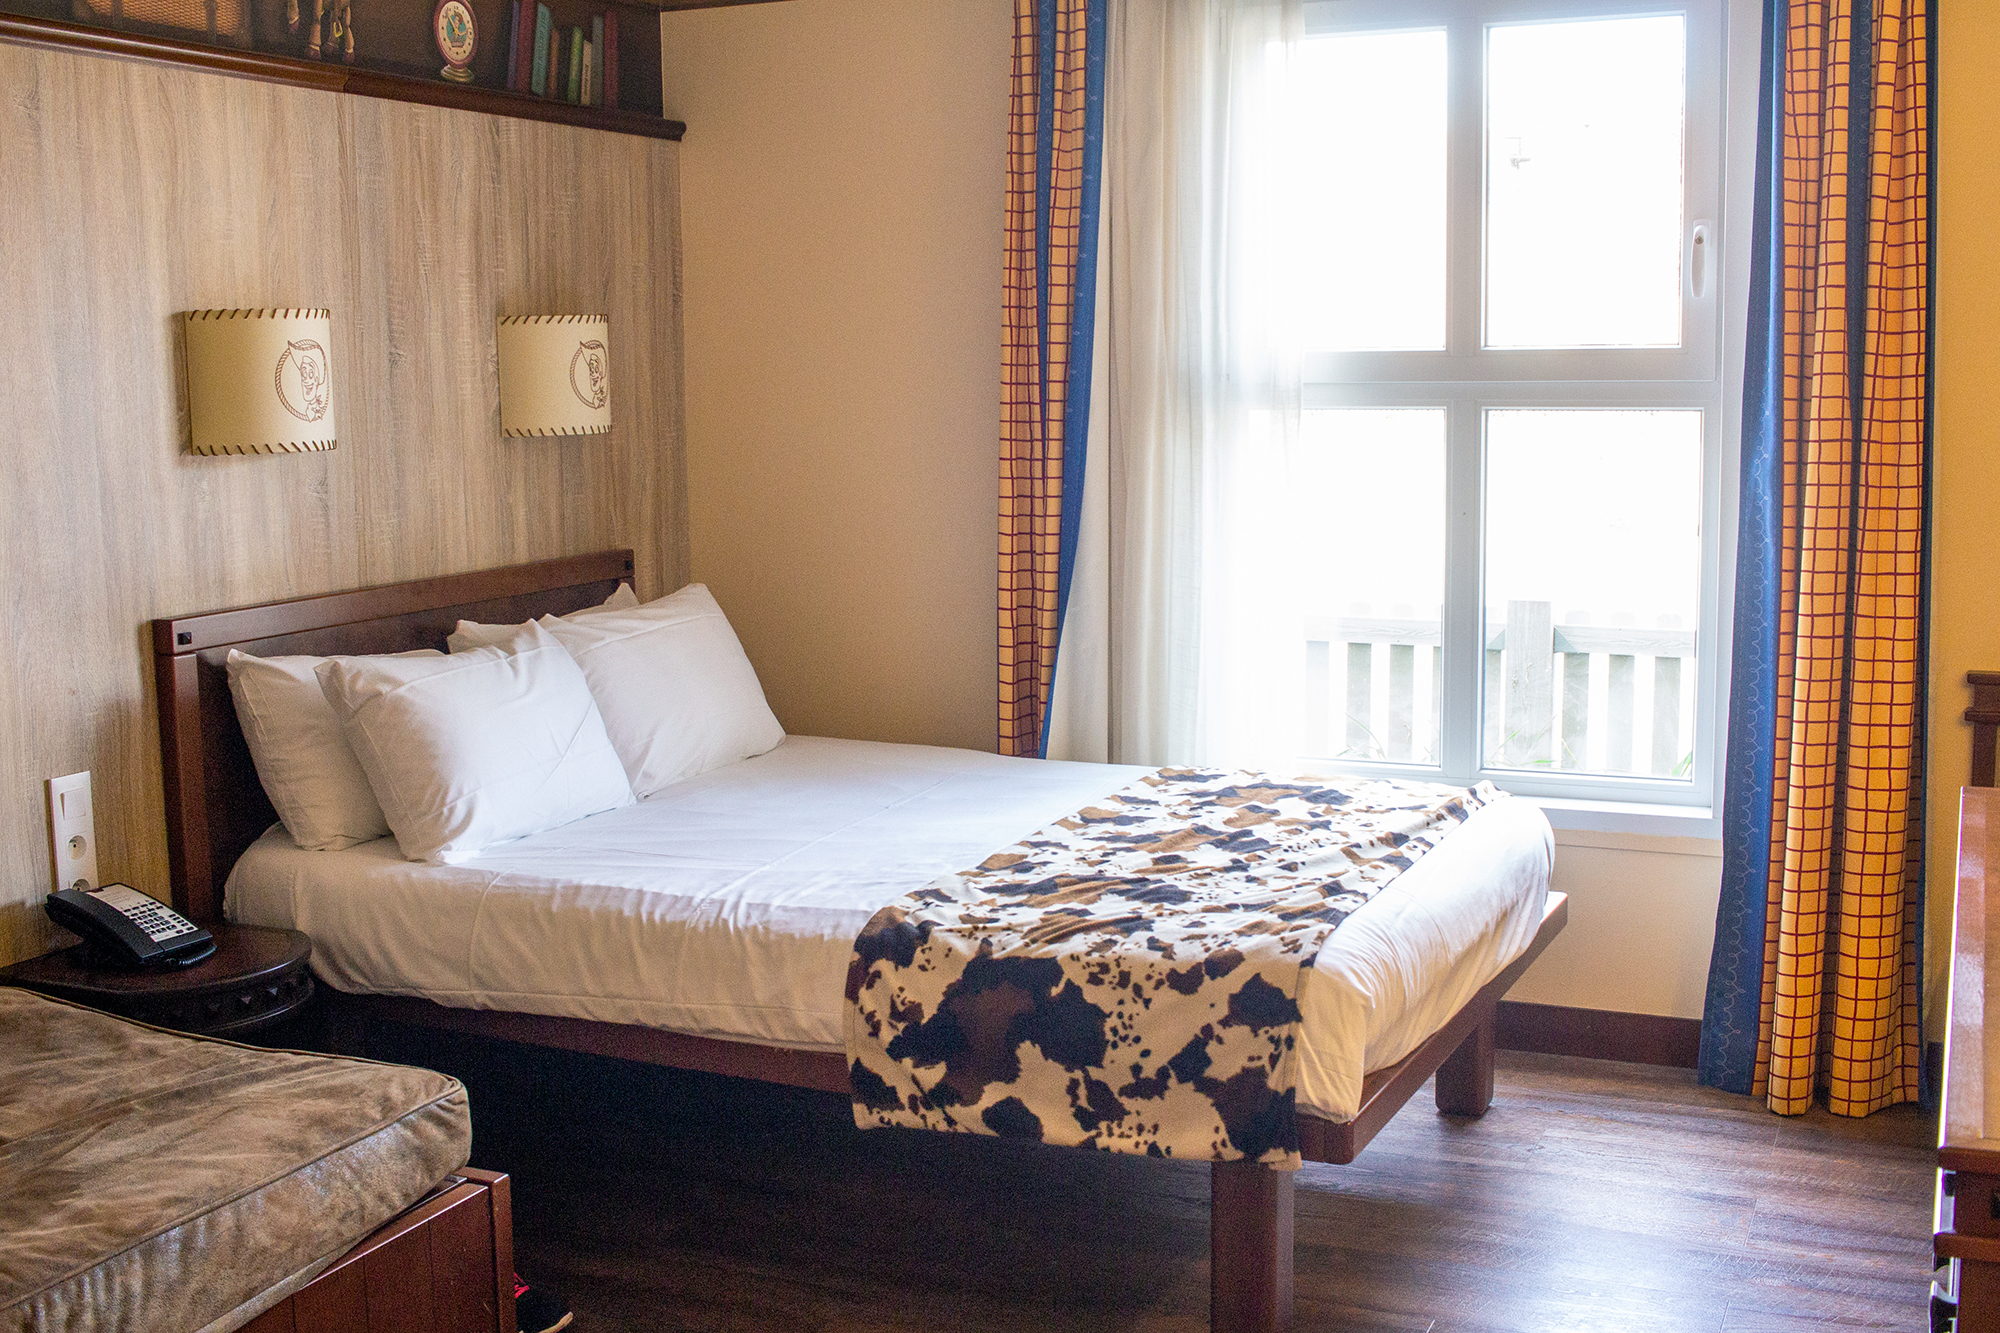 Hotel room bed with cow print furnishings, and curtains with yellow checked fabric | Staying at Hotel Cheyenne in Disneyland Paris